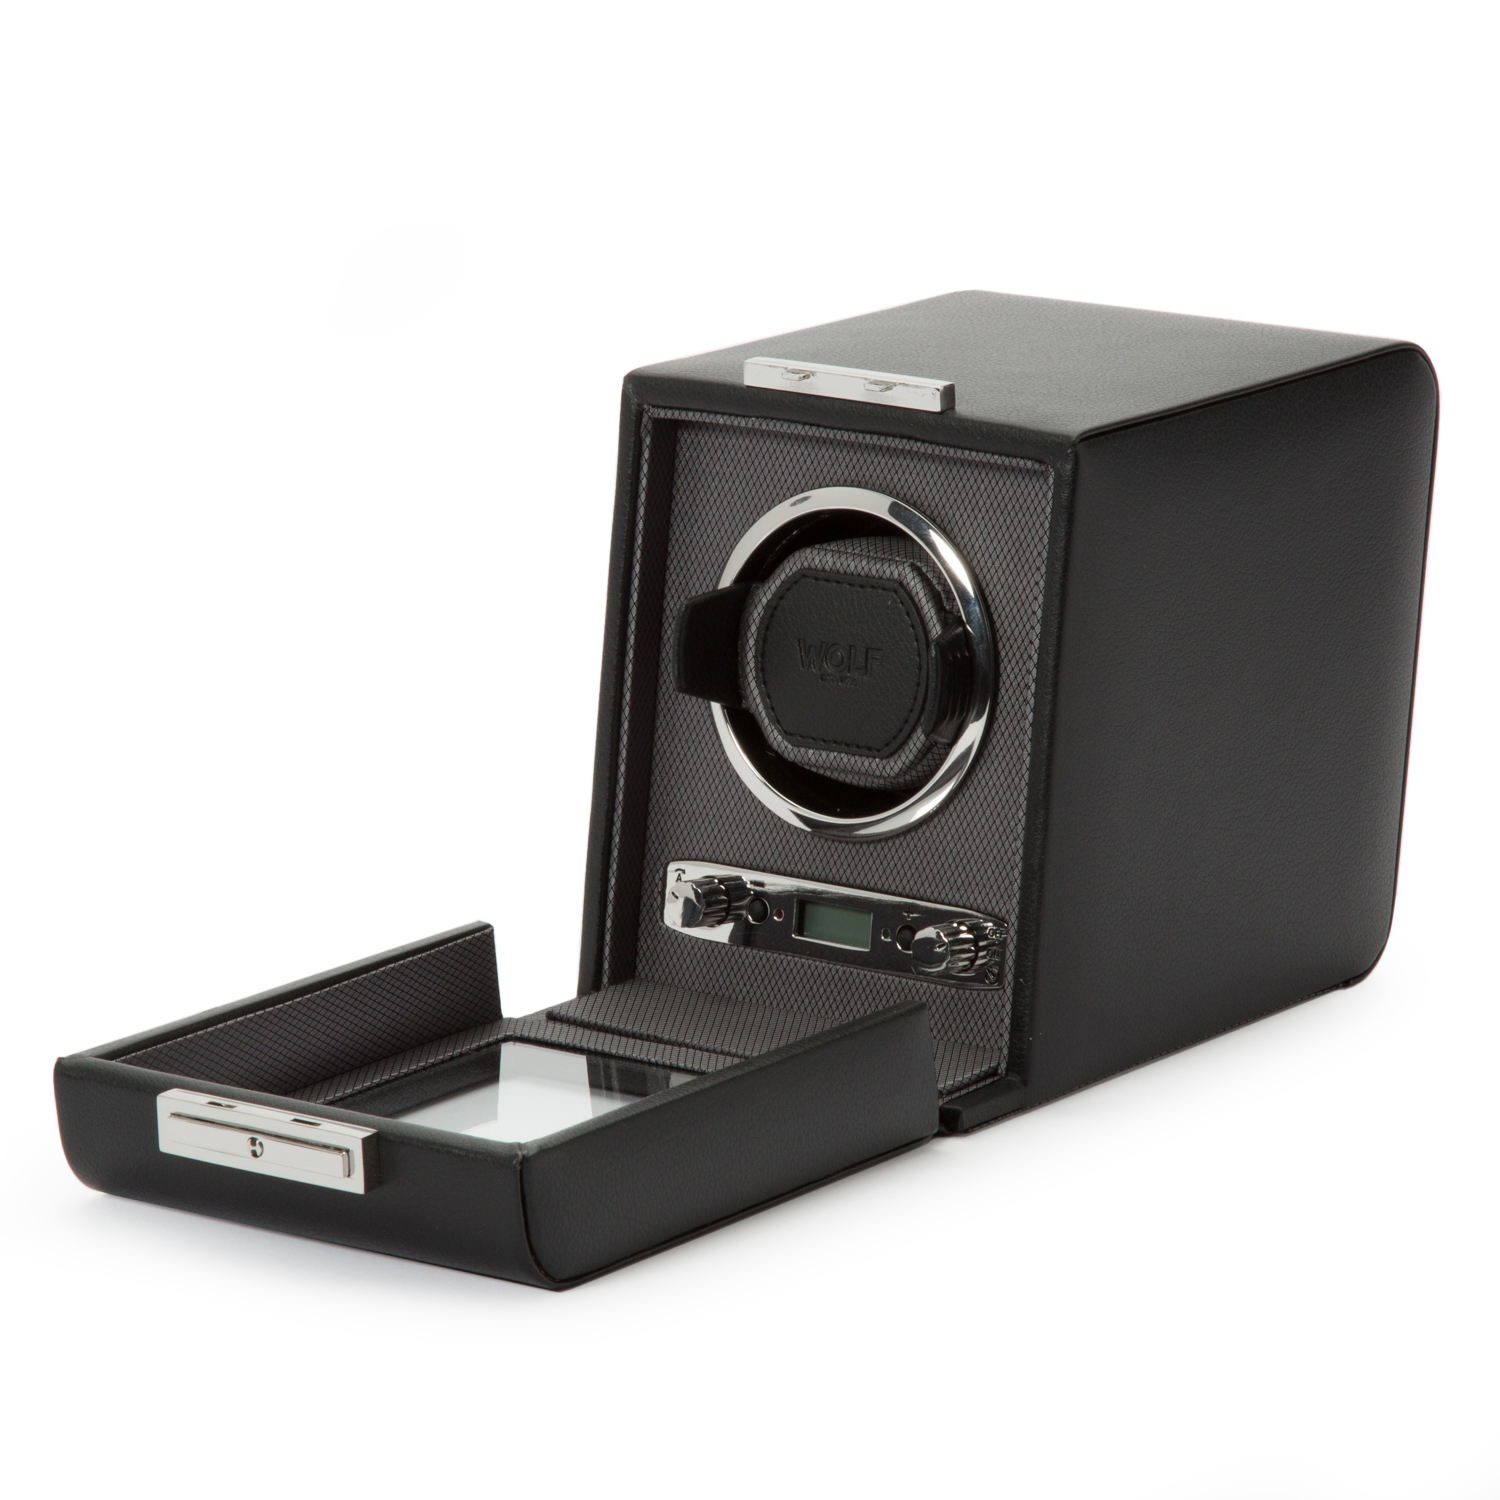 WOLF Viceroy Men's Single Automatic Watch Winder in Wood Faux Leather Construction